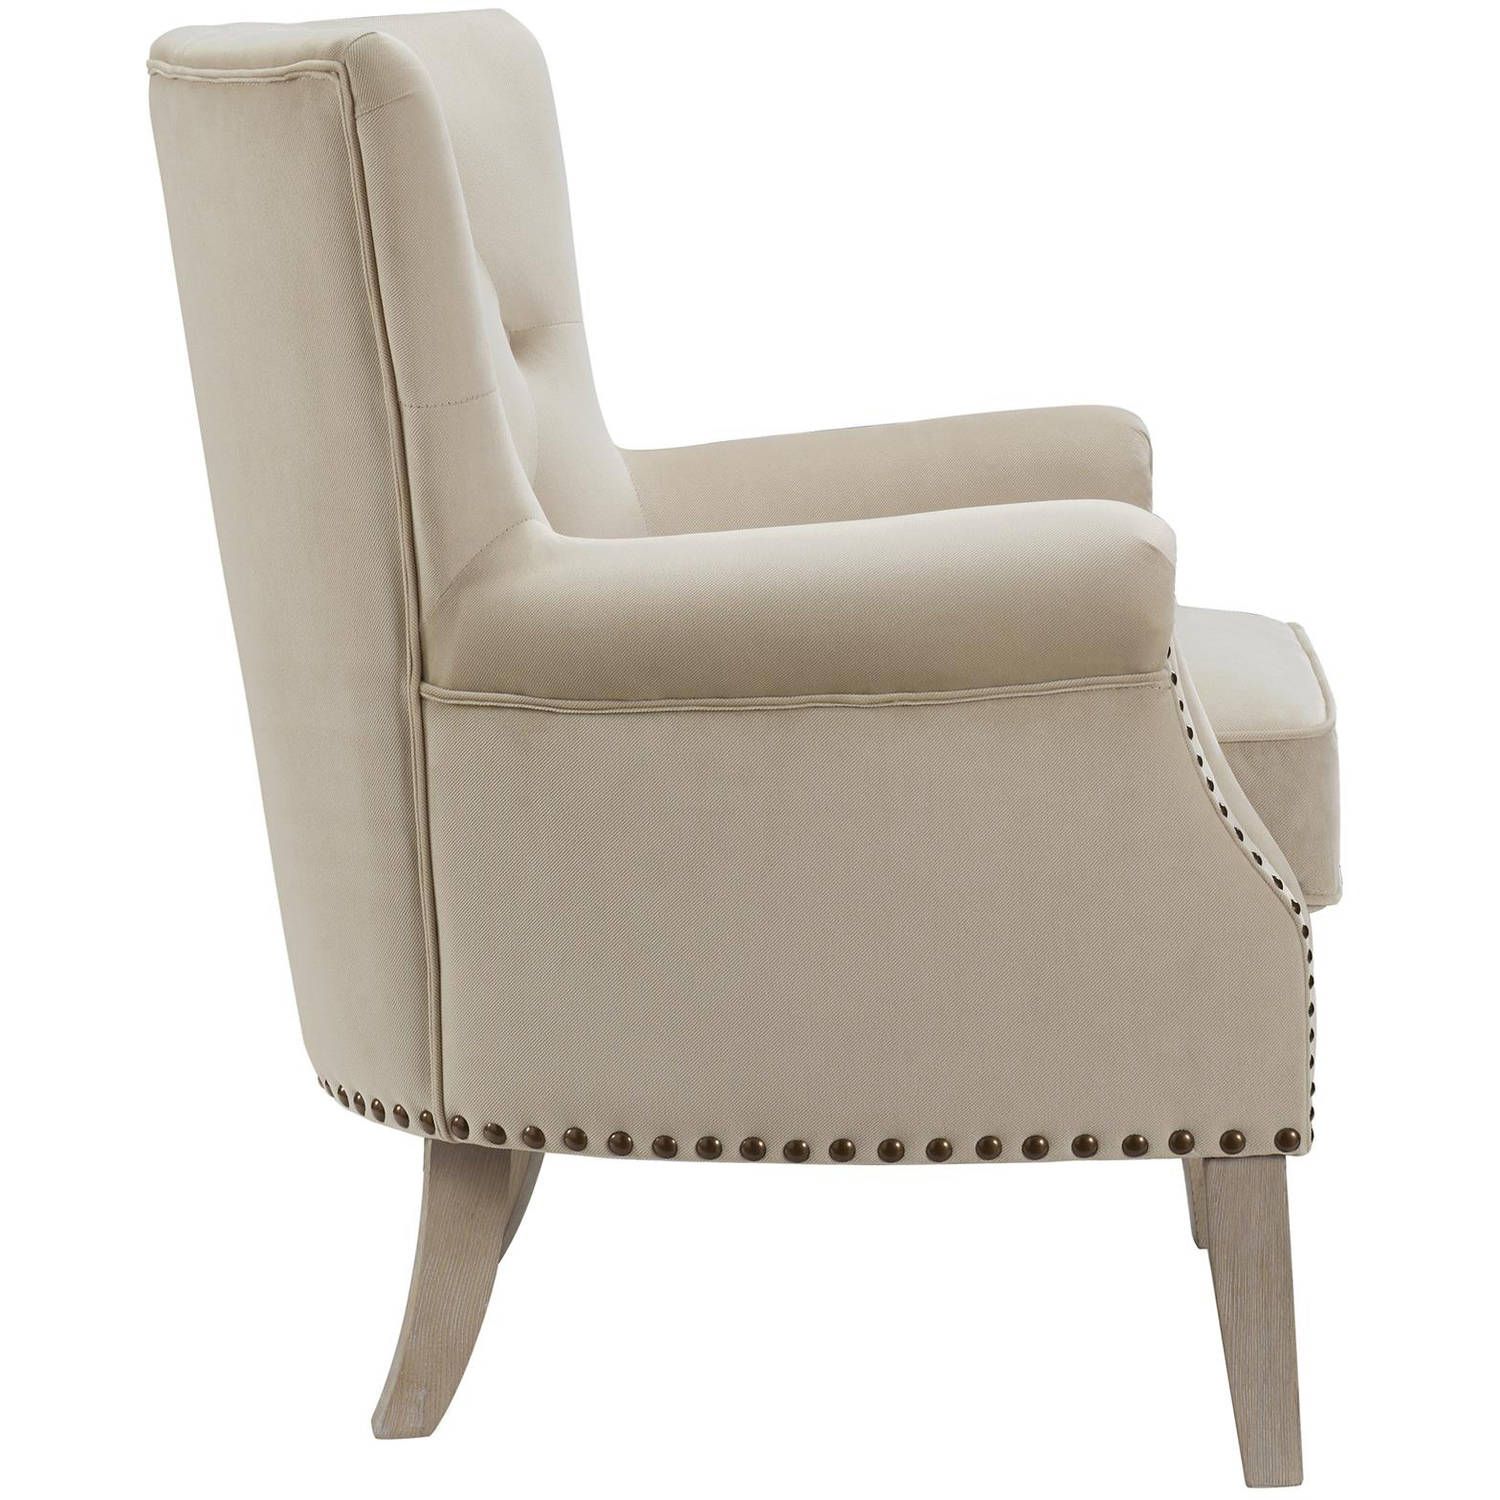 Better Homes and Gardens Rolled Arm Accent Chair, Multiple Colors - Walmart.com